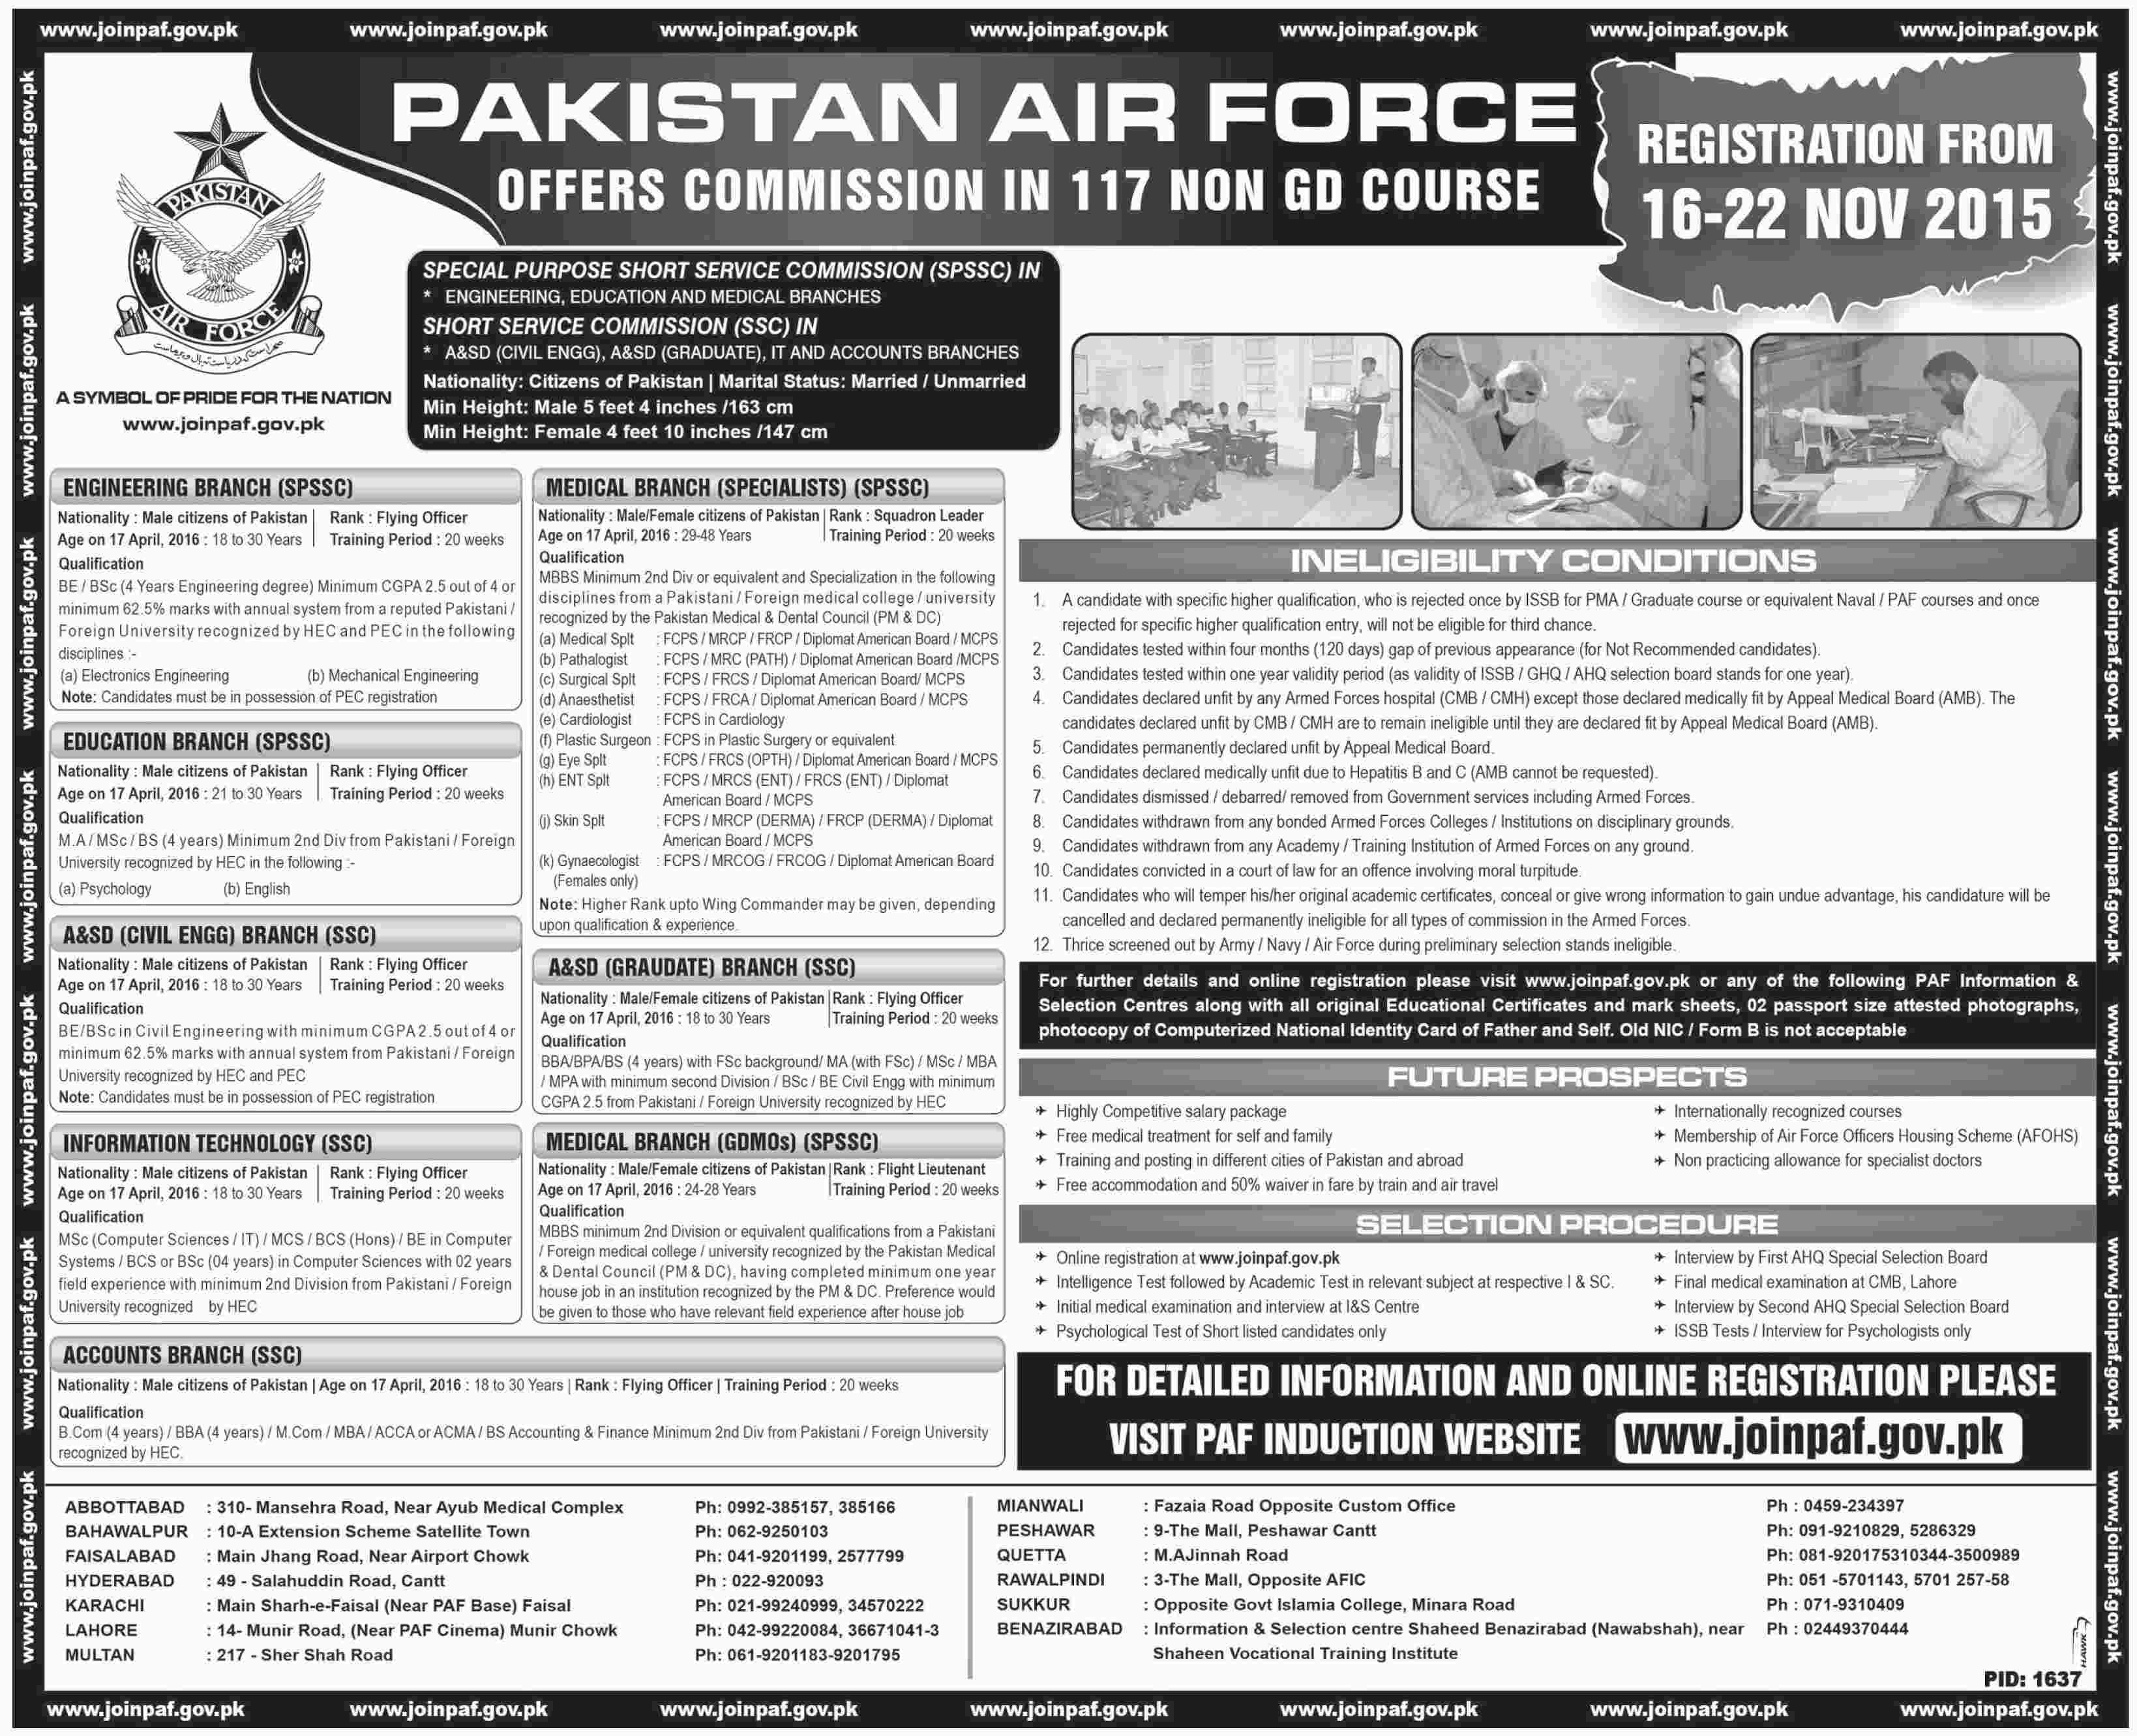 Pakistan Air Force PAF Officers Commissioned Jobs 2015 In 117 Non Gd Course Online Registration